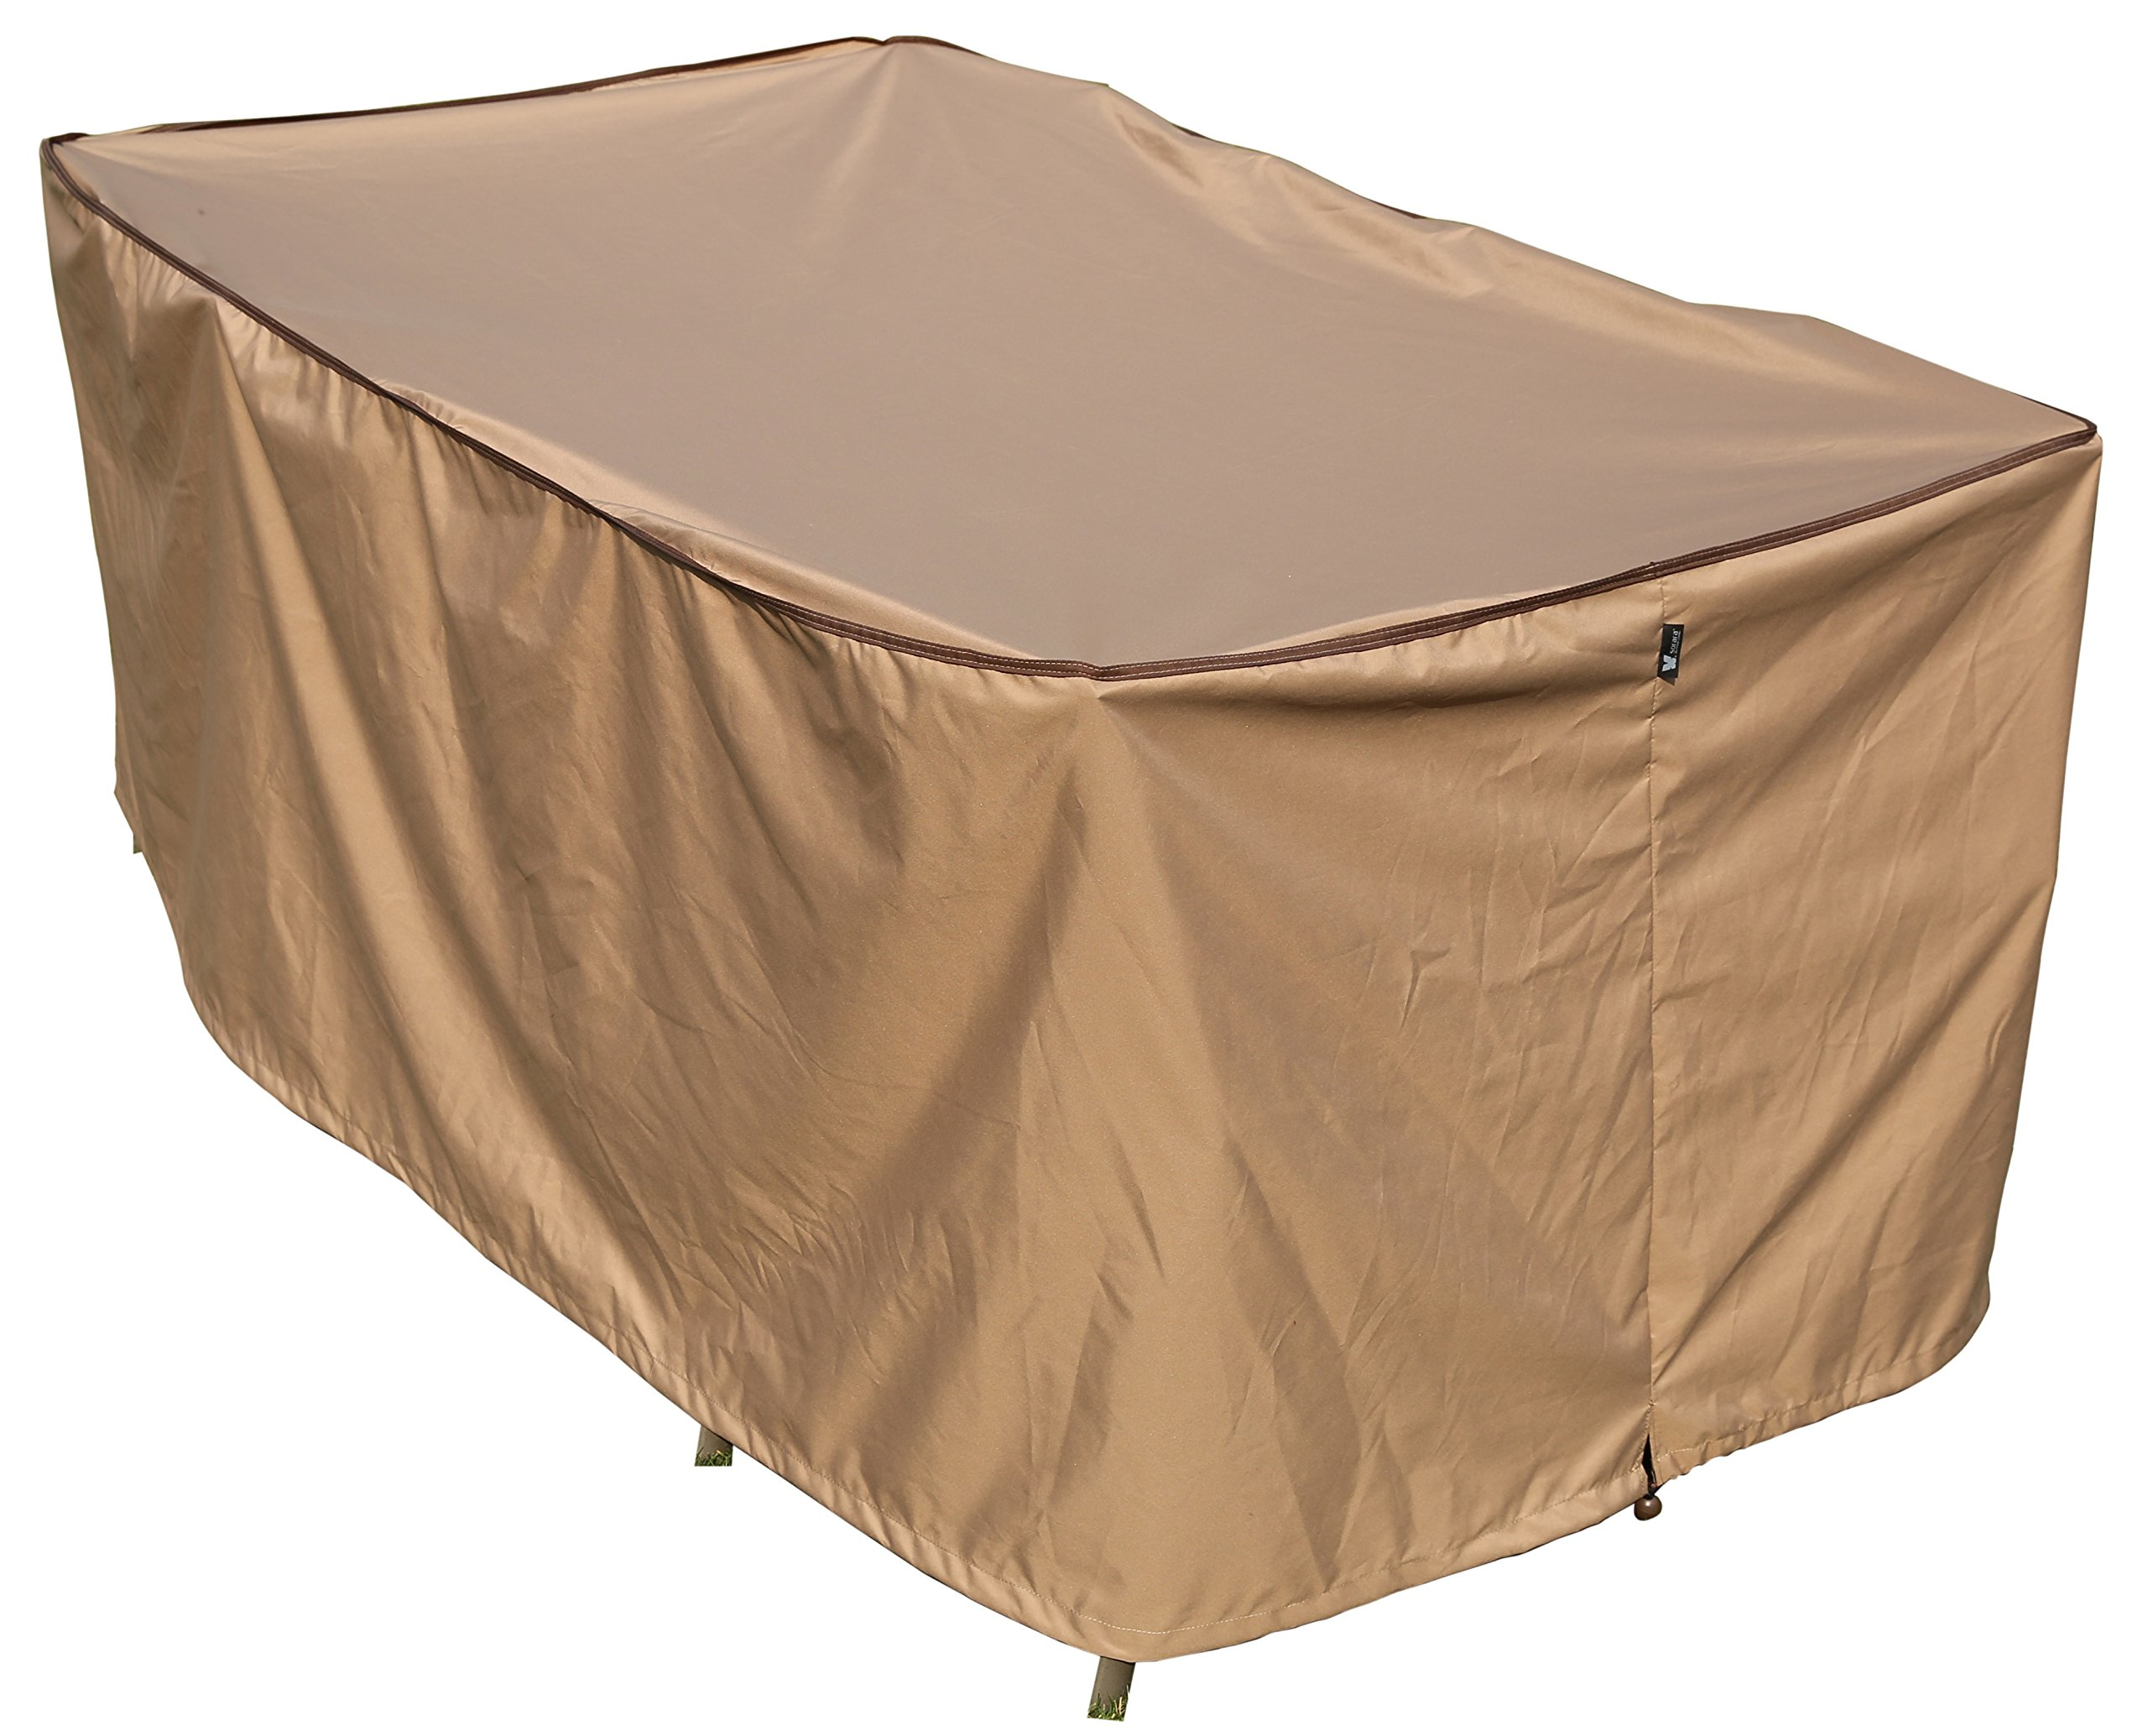 SORARA Rectangular Table and Chair Set Cover Outdoor Porch Furniture Cover, Water Proof, All Weather Protection, 92'' L x 60'' W x 36'' H